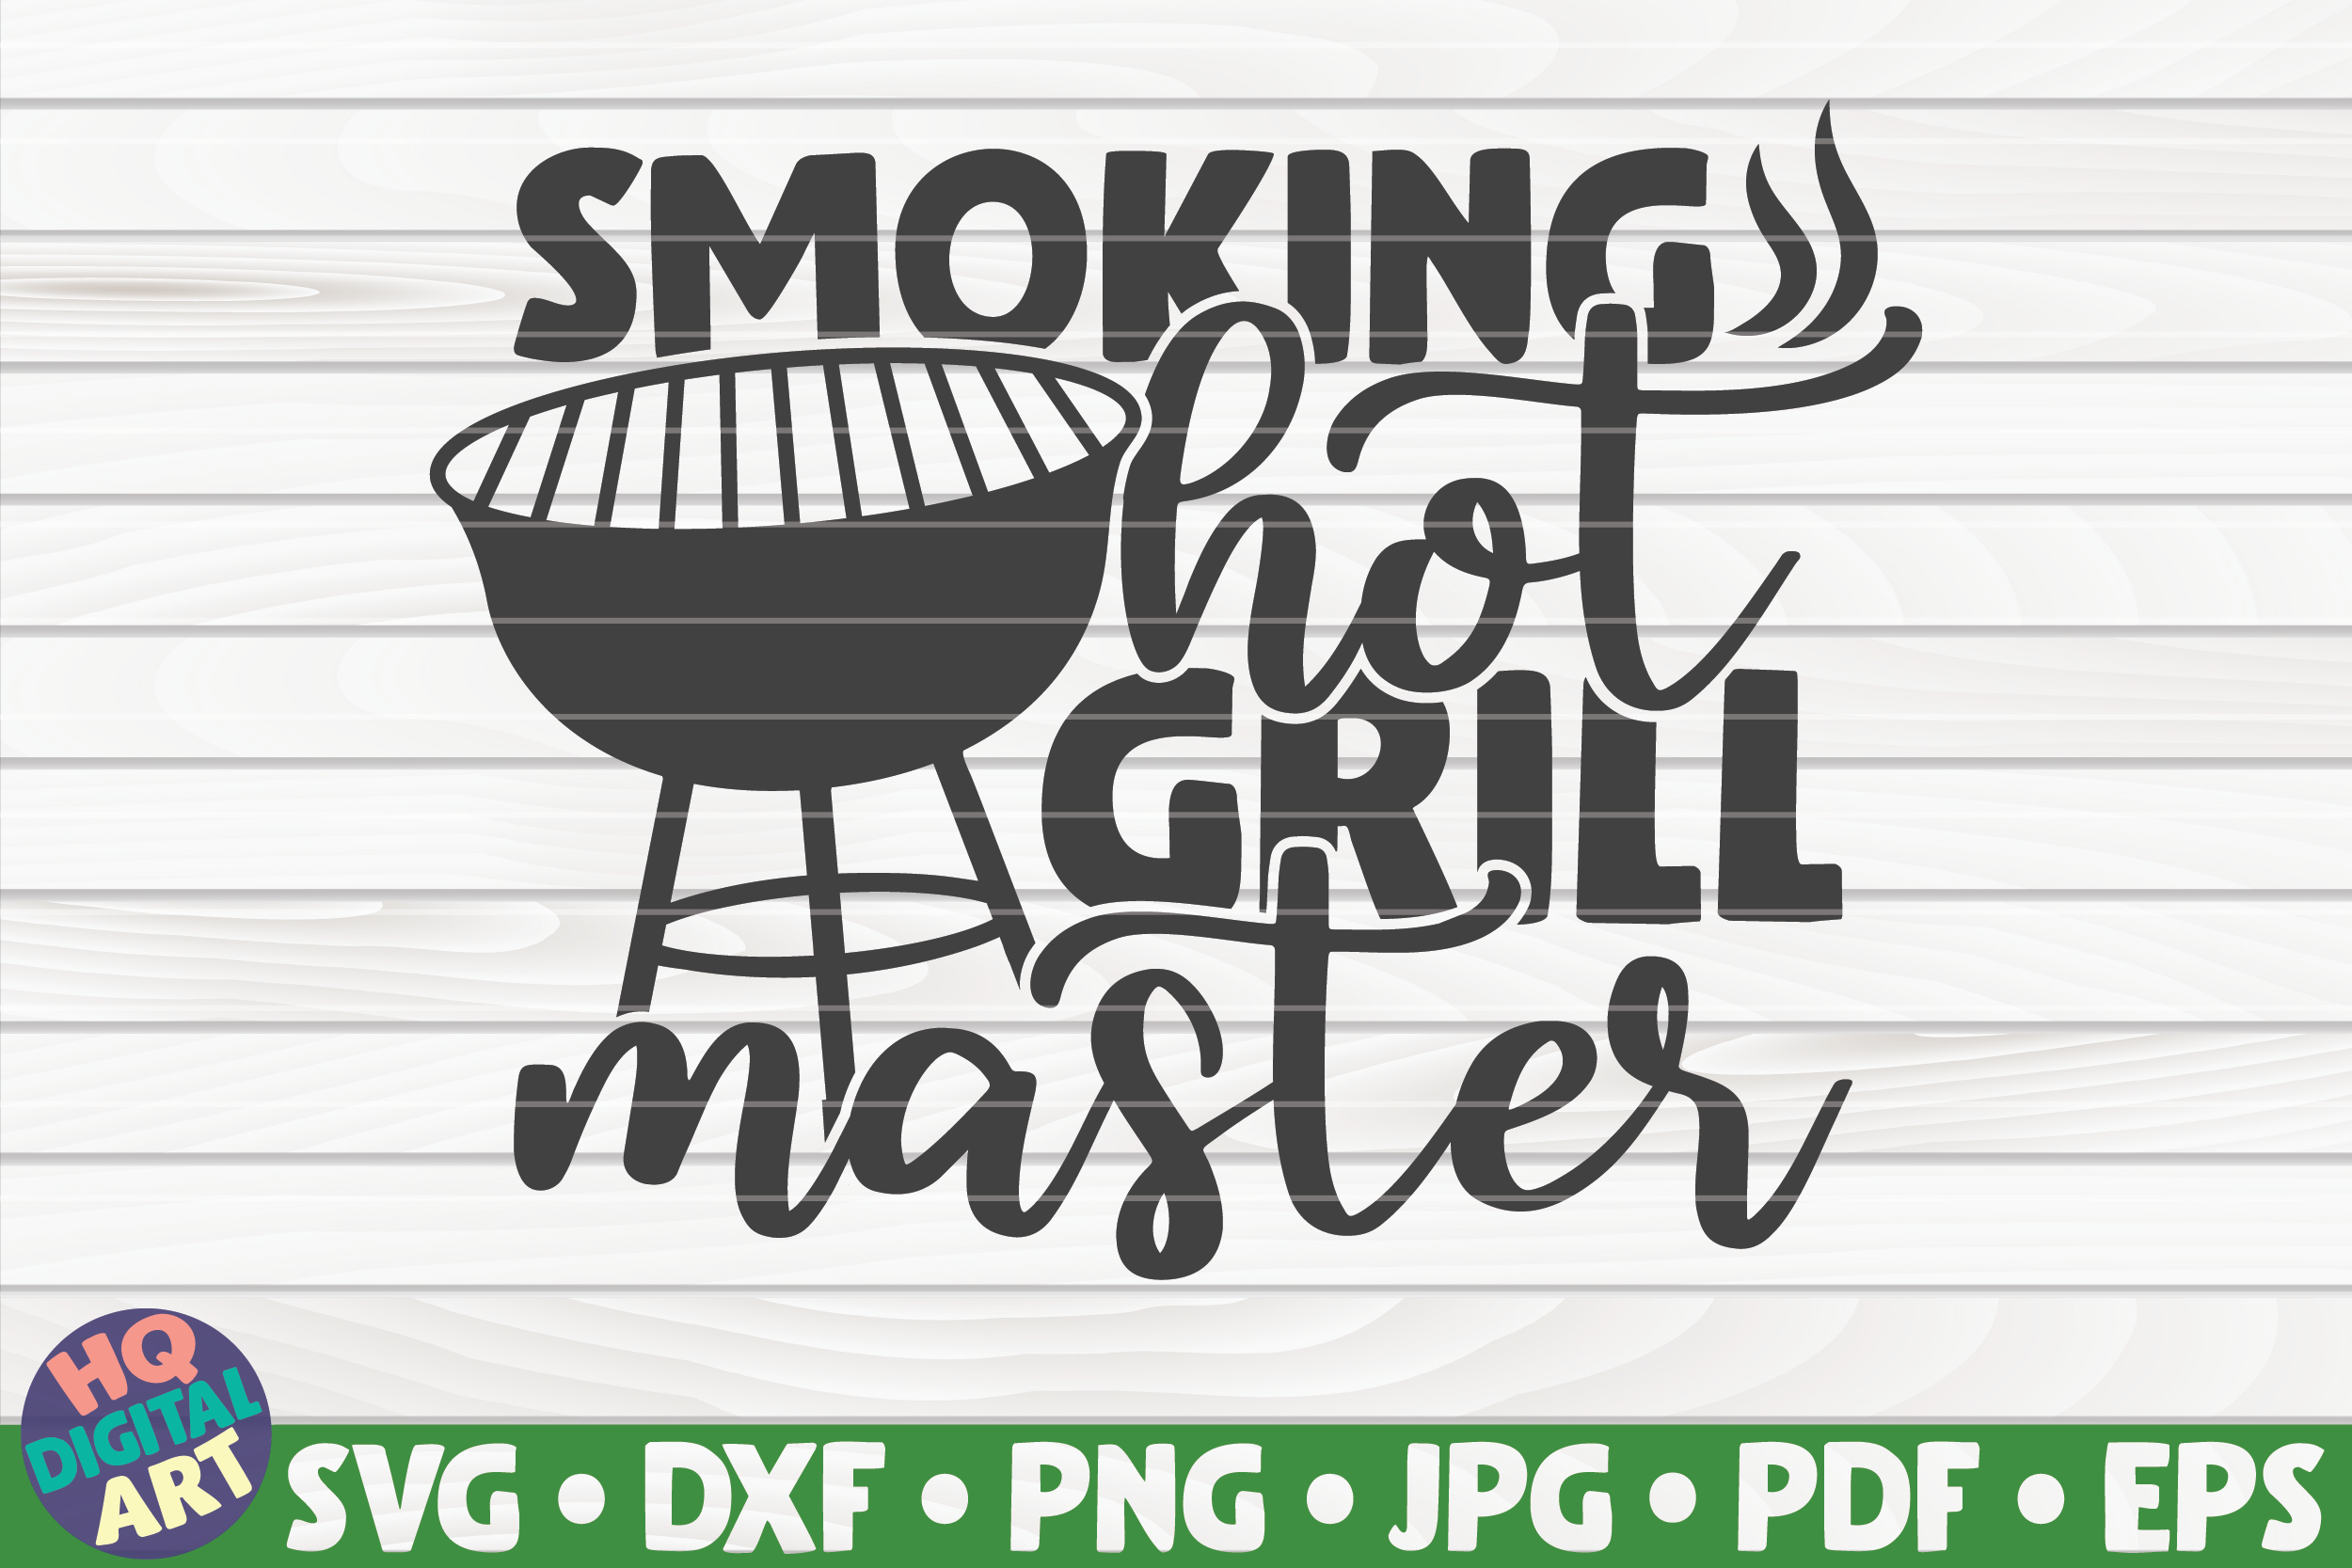 Download Free Smoking Hot Grill Master Graphic By Mihaibadea95 Creative Fabrica for Cricut Explore, Silhouette and other cutting machines.